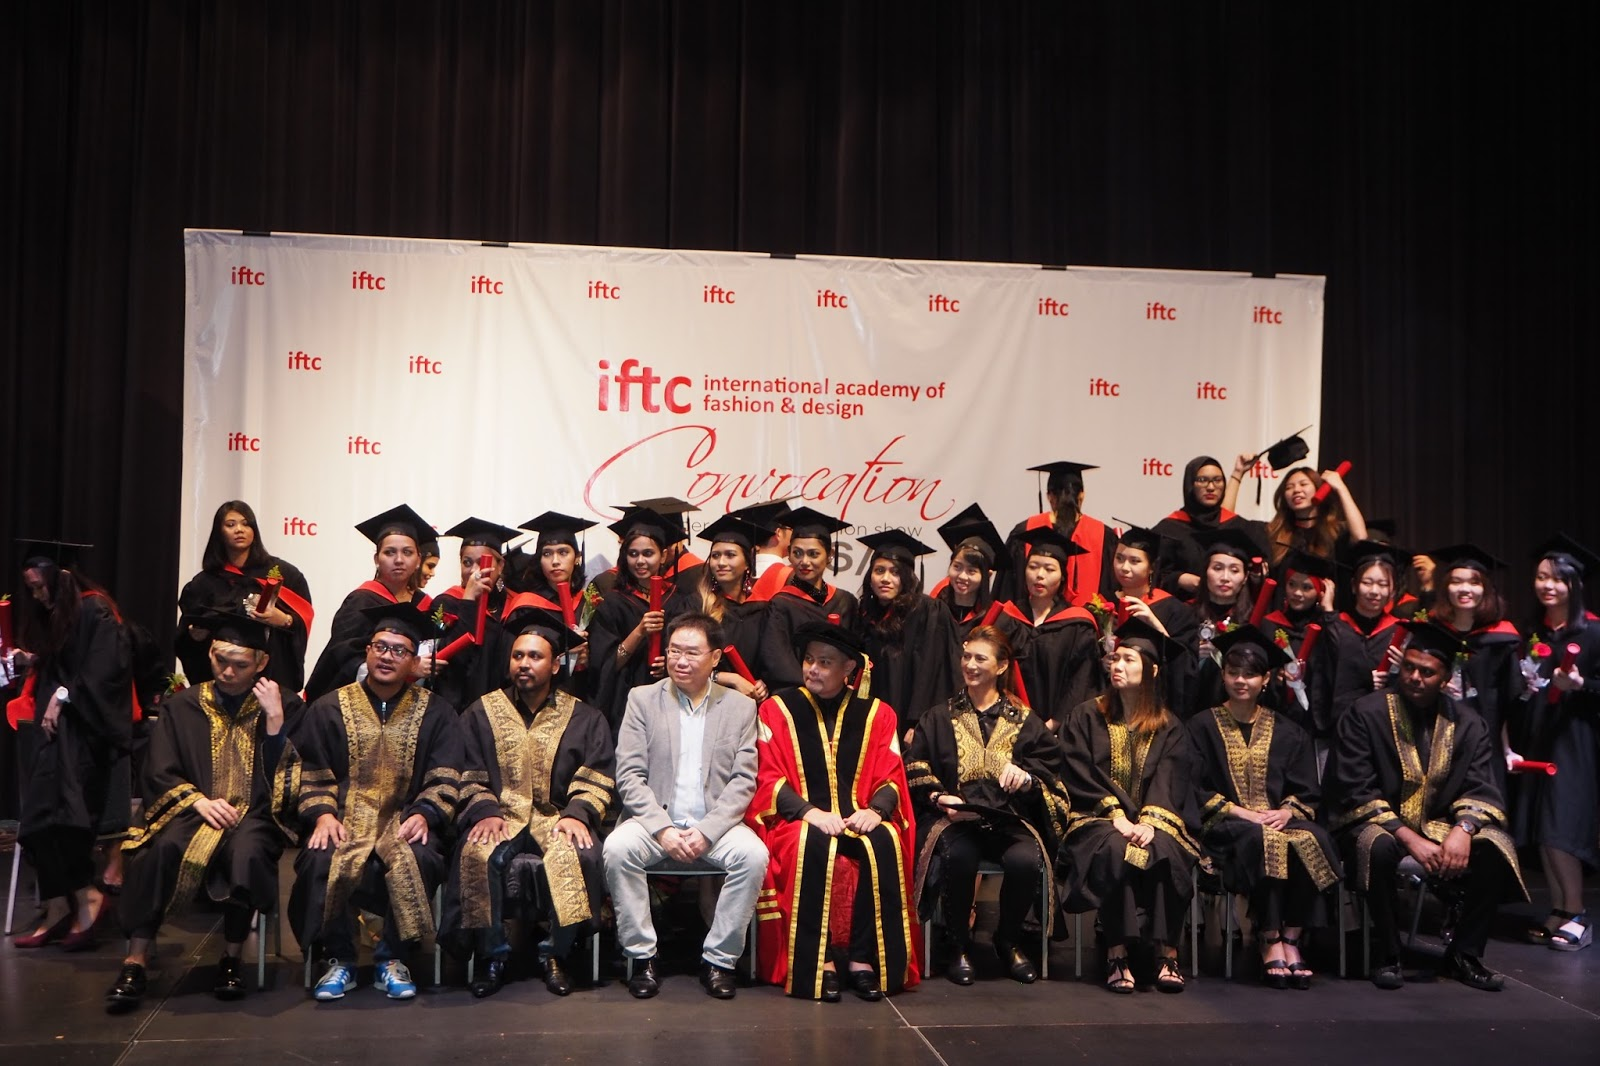 Kee Hua Chee Live Part 2 Iftc International Academy Of Fashion Design Held Its Convocation At Wisma Bentley Music Auditorium In Fashionable Style With Show And Presentation Of Scrolls To Graduating Students